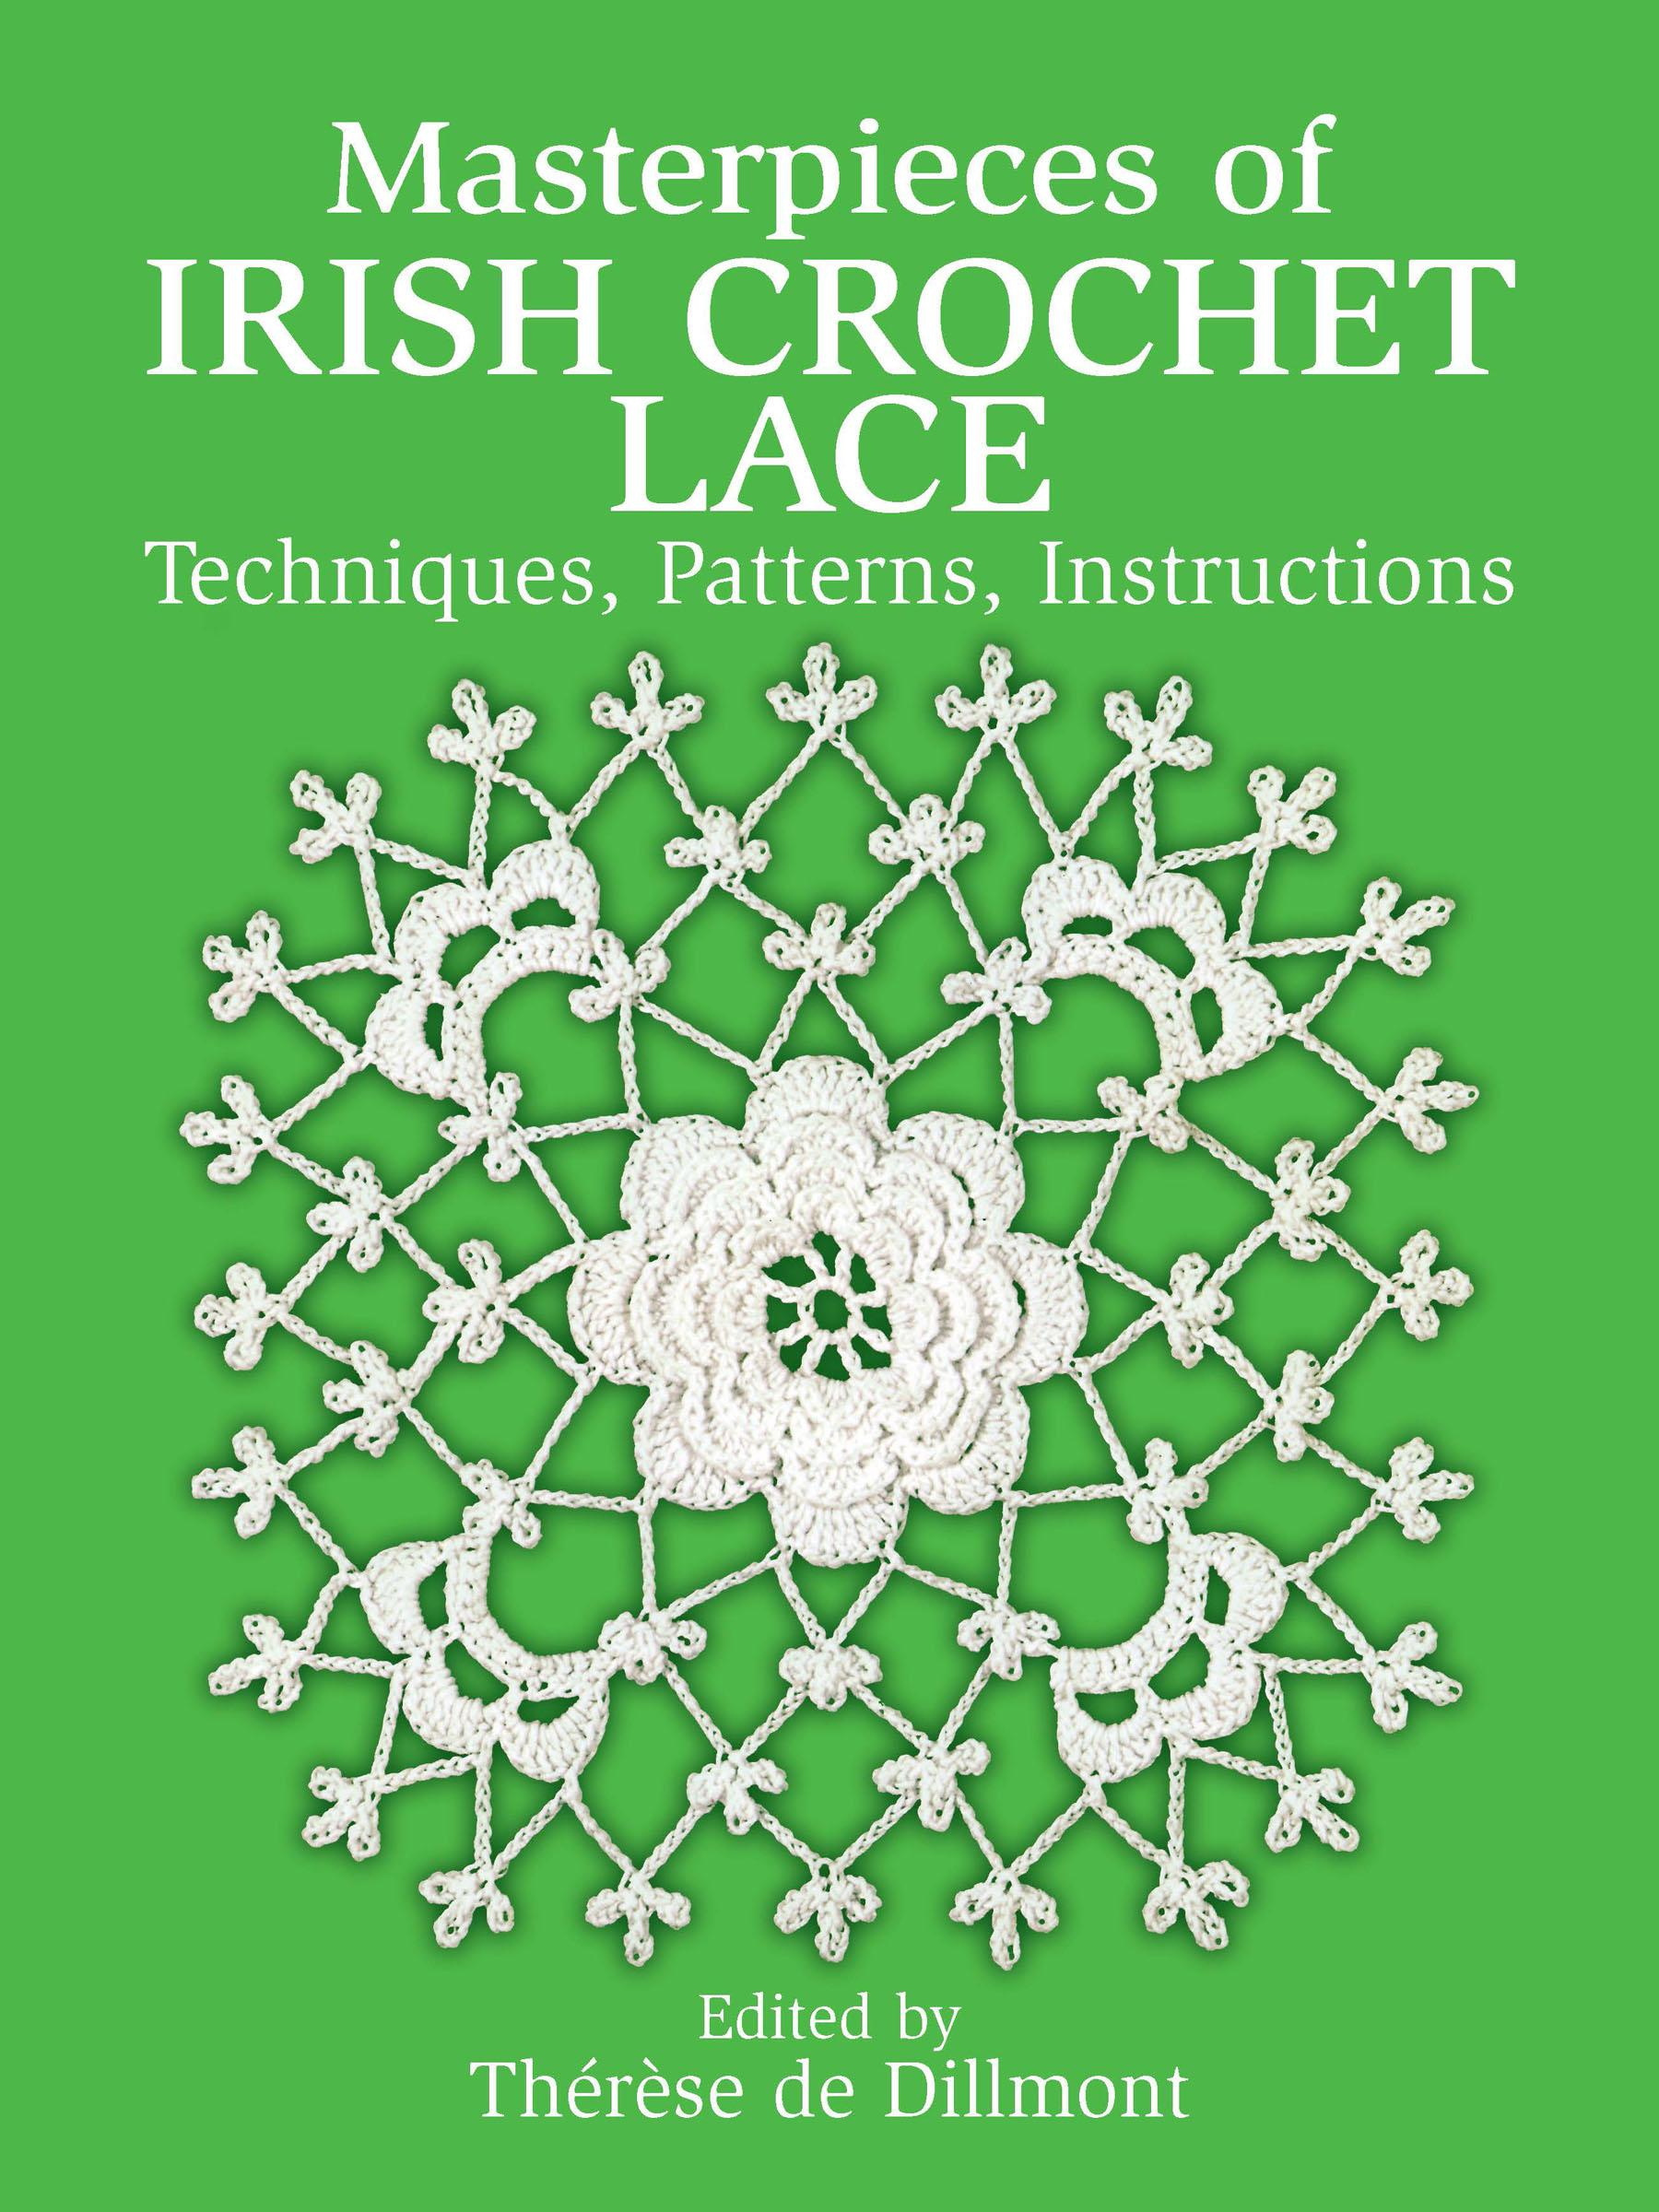 Masterpieces of Irish Crochet Lace